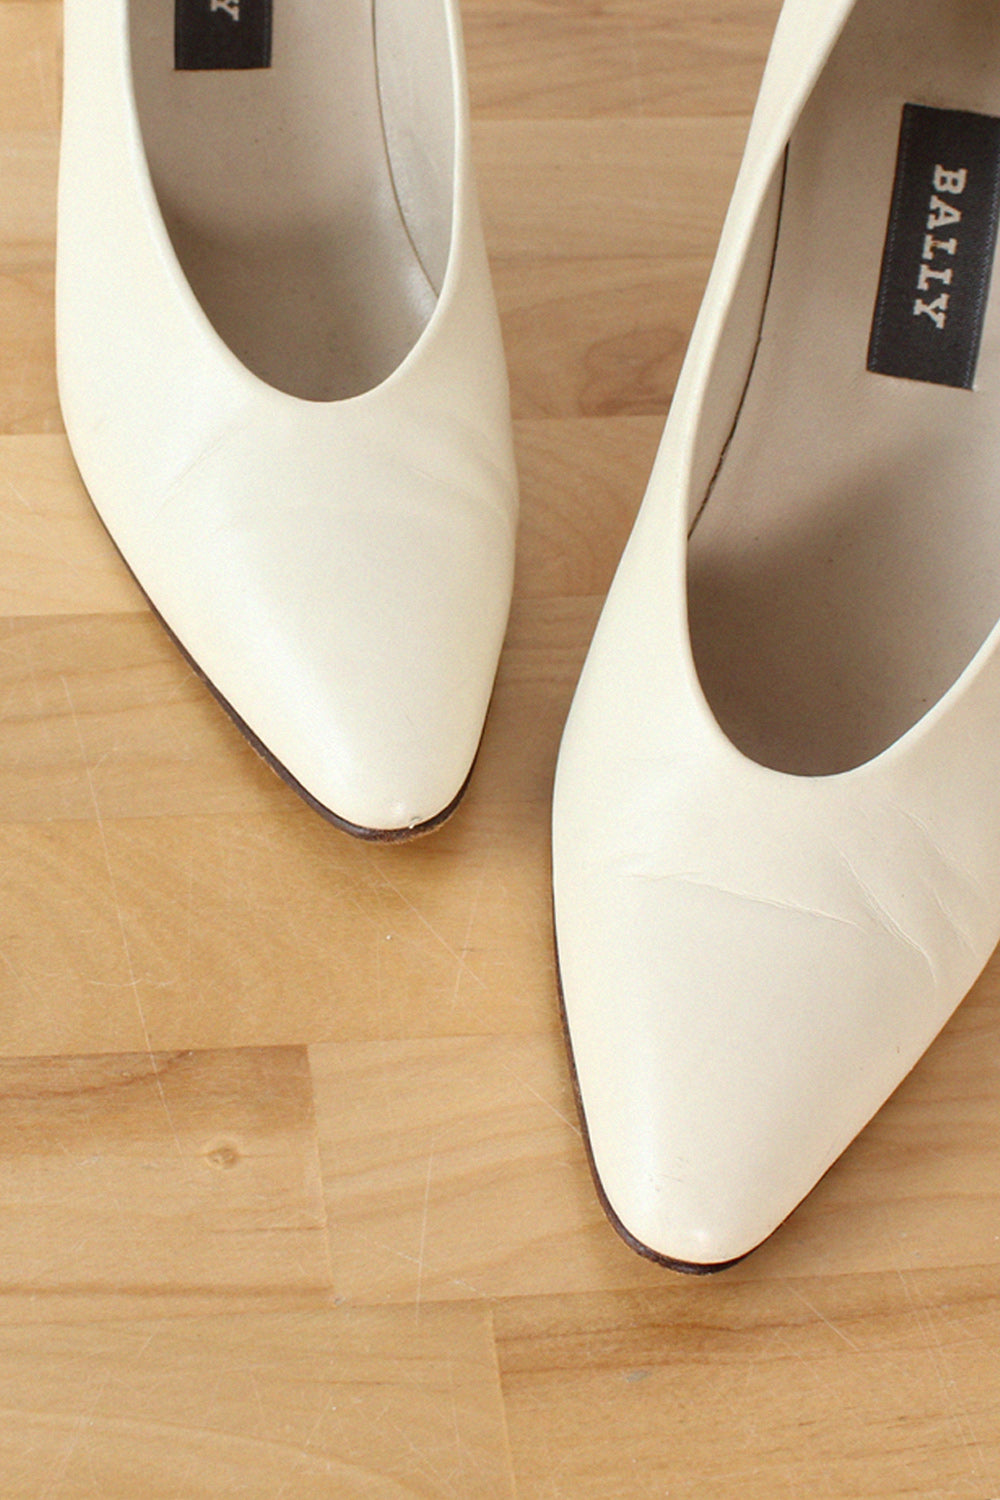 Bally Athena Ivory Pumps 6.5